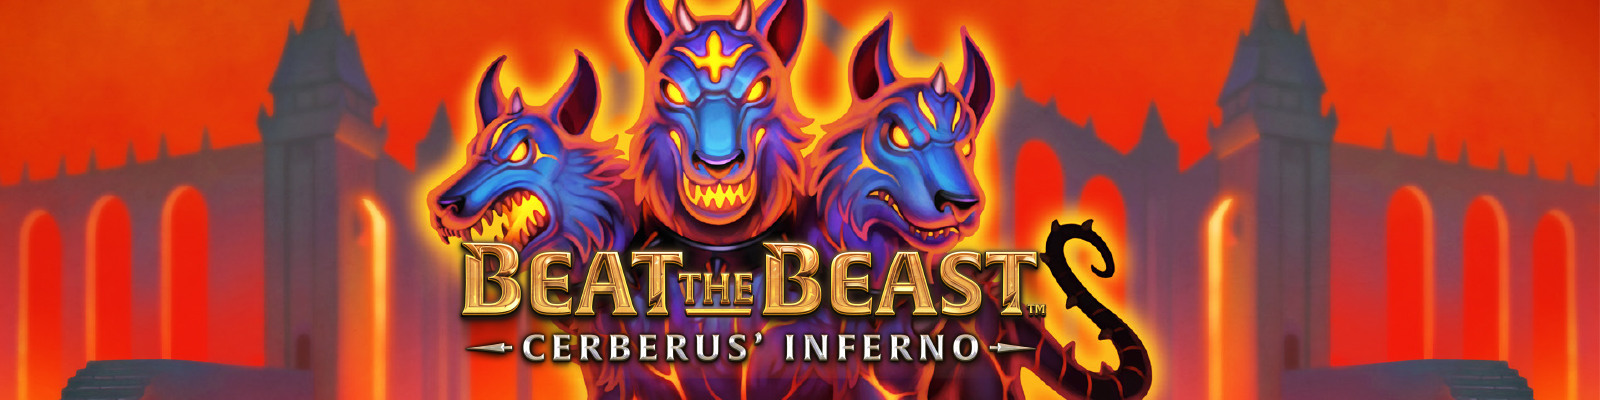 Cerberus' Inferno – the third beast to beat